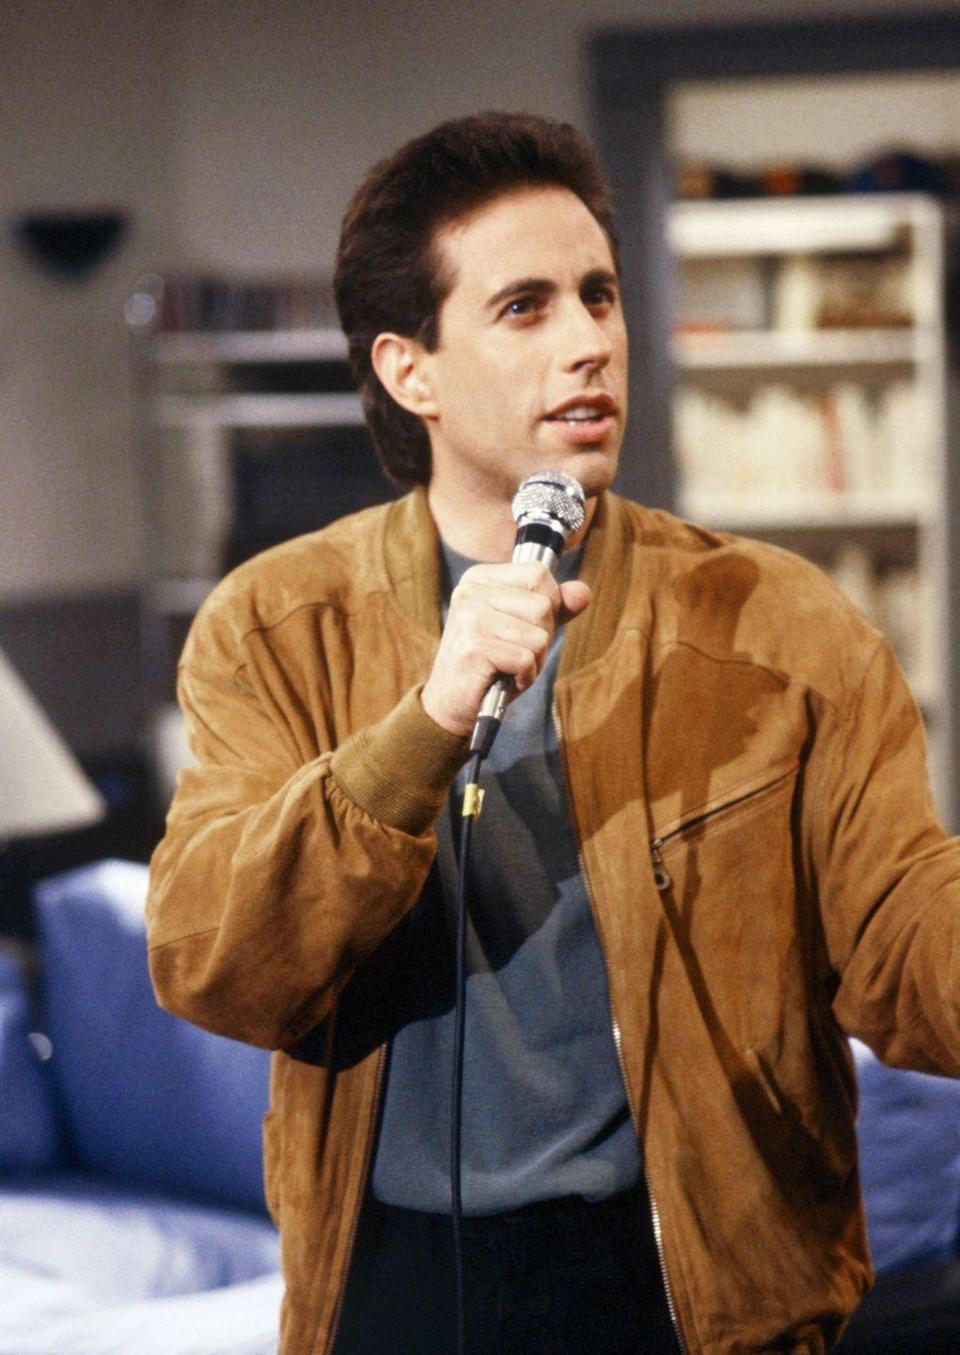 """<p>Since the show is conceptuality tied to stand-up, most episodes opened with a clip of Seinfeld's routine. After that comes the famous opening music, but many people don't know that the theme song's <a href=""""https://www.insider.com/seinfeld-fun-facts-2018-10#the-theme-song-was-different-in-every-episode-3"""" rel=""""nofollow noopener"""" target=""""_blank"""" data-ylk=""""slk:rhythm was different for each episode"""" class=""""link rapid-noclick-resp"""">rhythm was different for each episode</a>. </p>"""